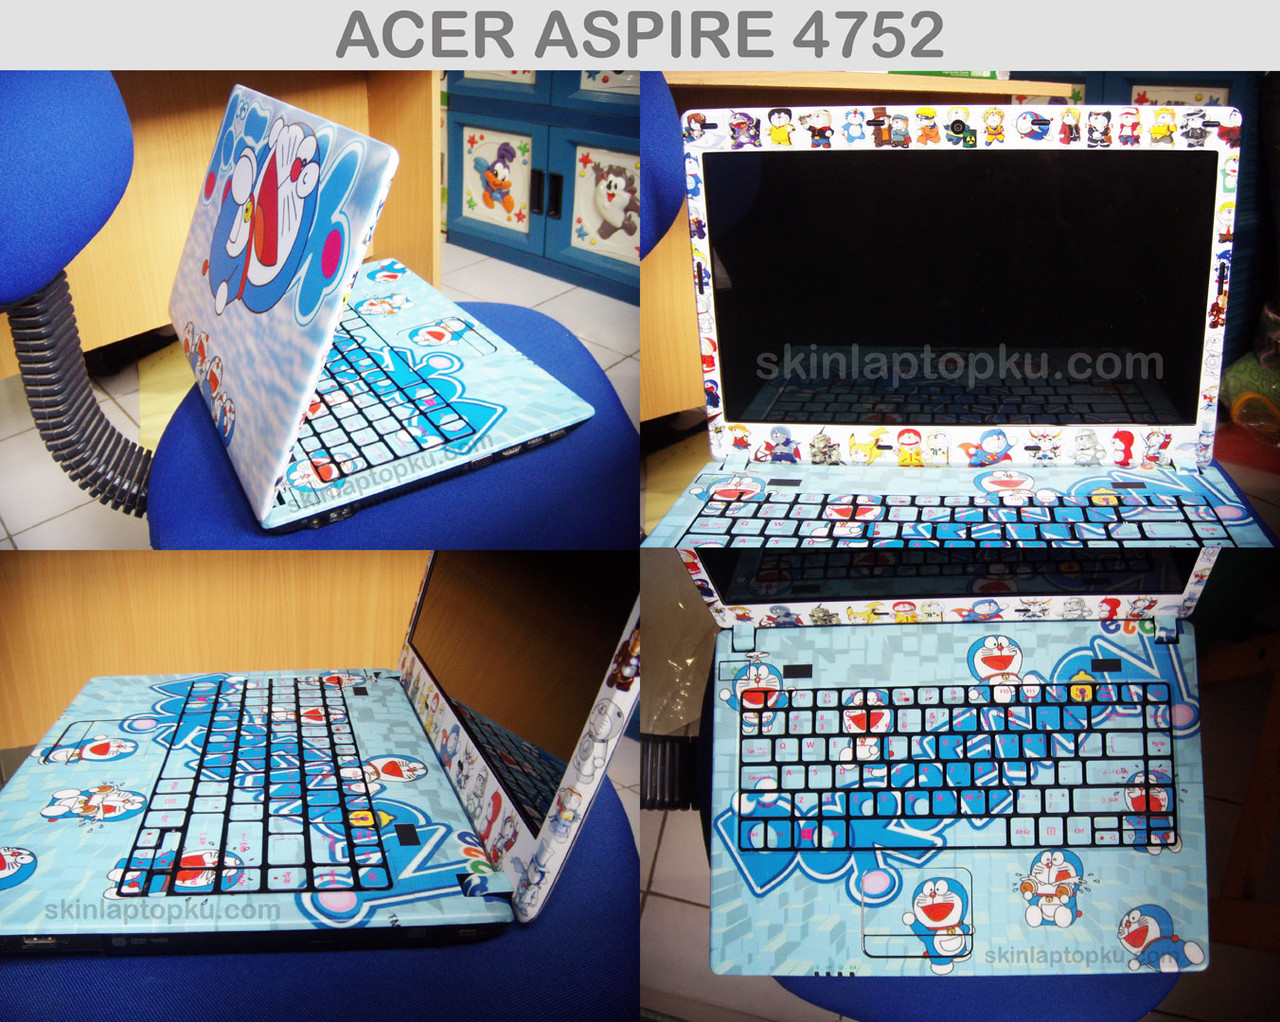 Garskin Laptop  Dewo Shop